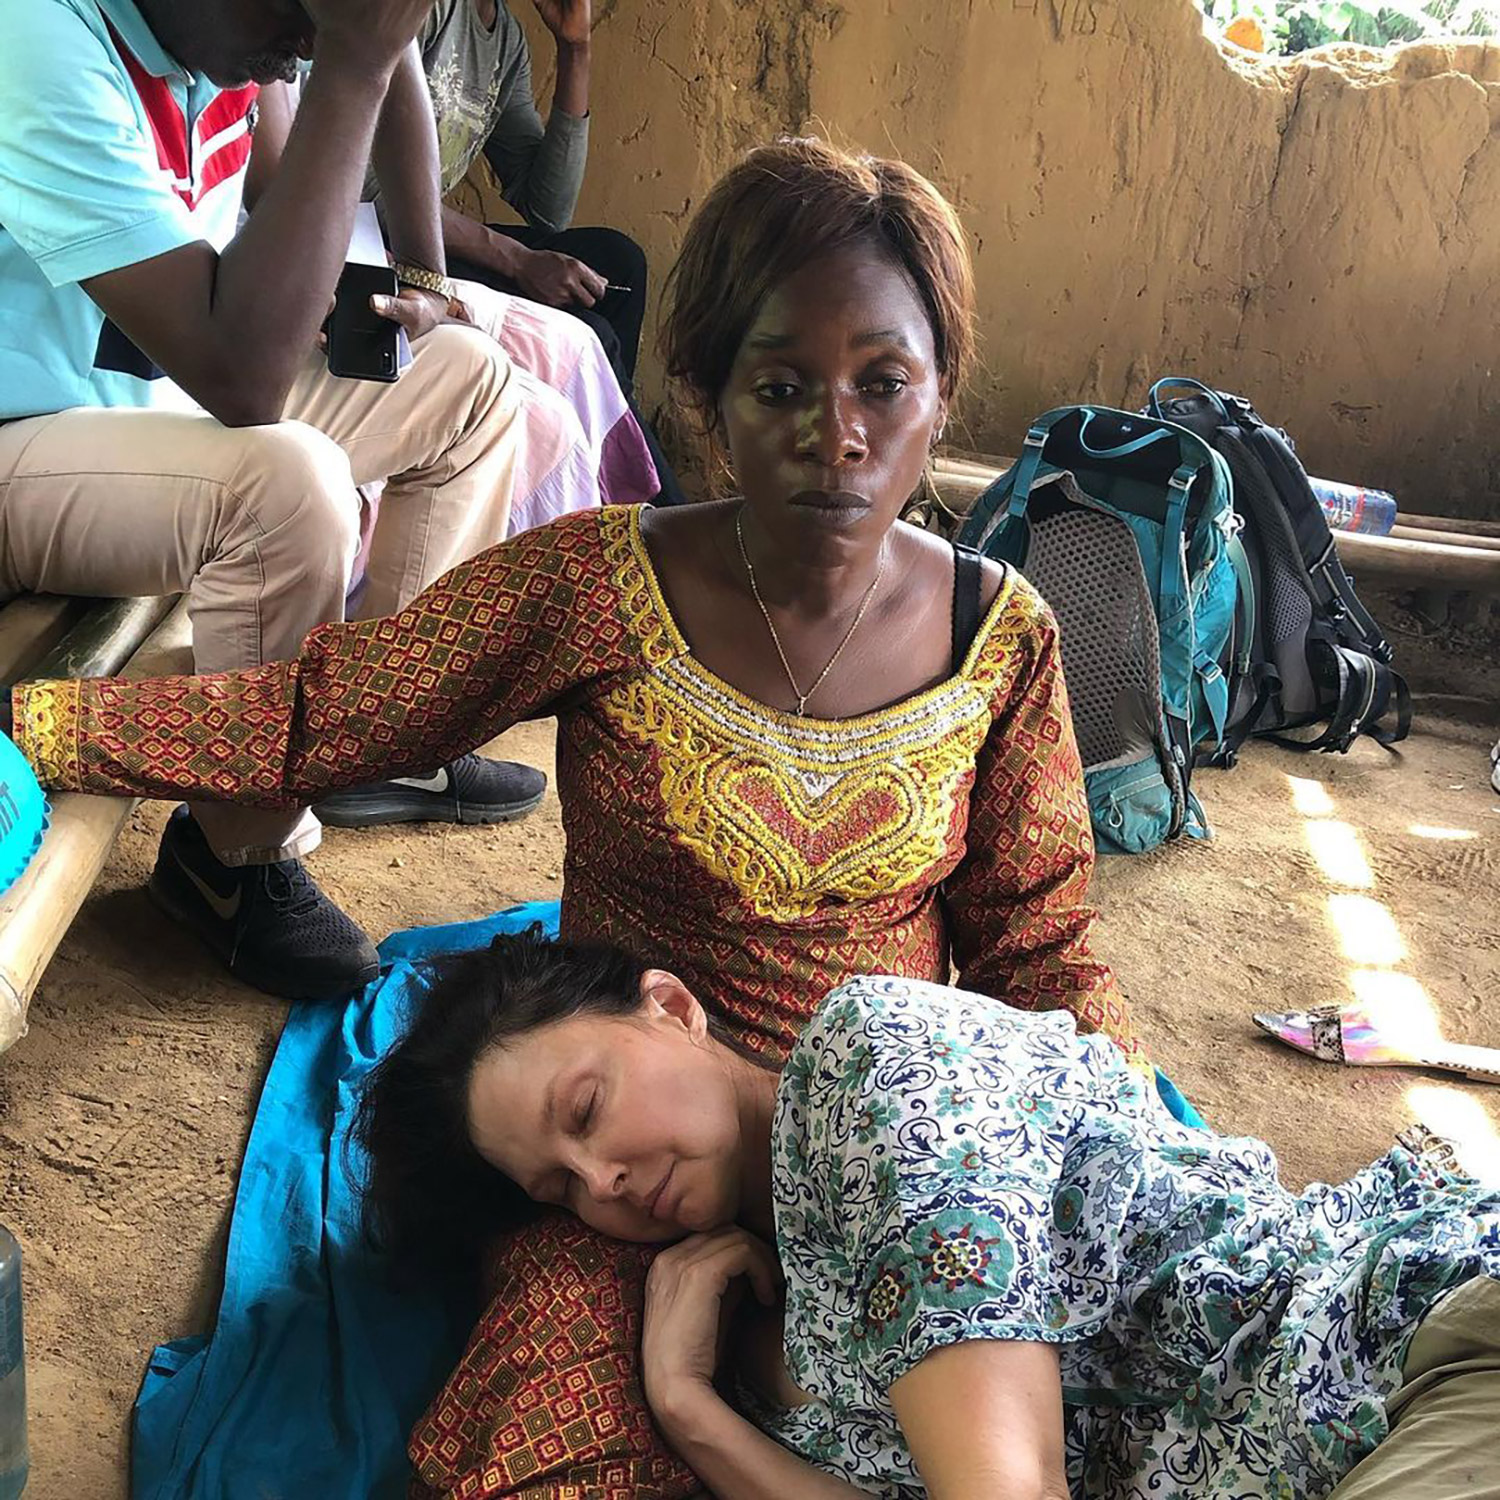 Today, five months and three weeks after the accident in the congolese rainforest, i walked again, ashley judd revealed, alongside footage of her hiking at swiss national park in switzerland. Ashley Judd Shares Photos From Her Grueling 55 Hour Rescue In The Congo People Com